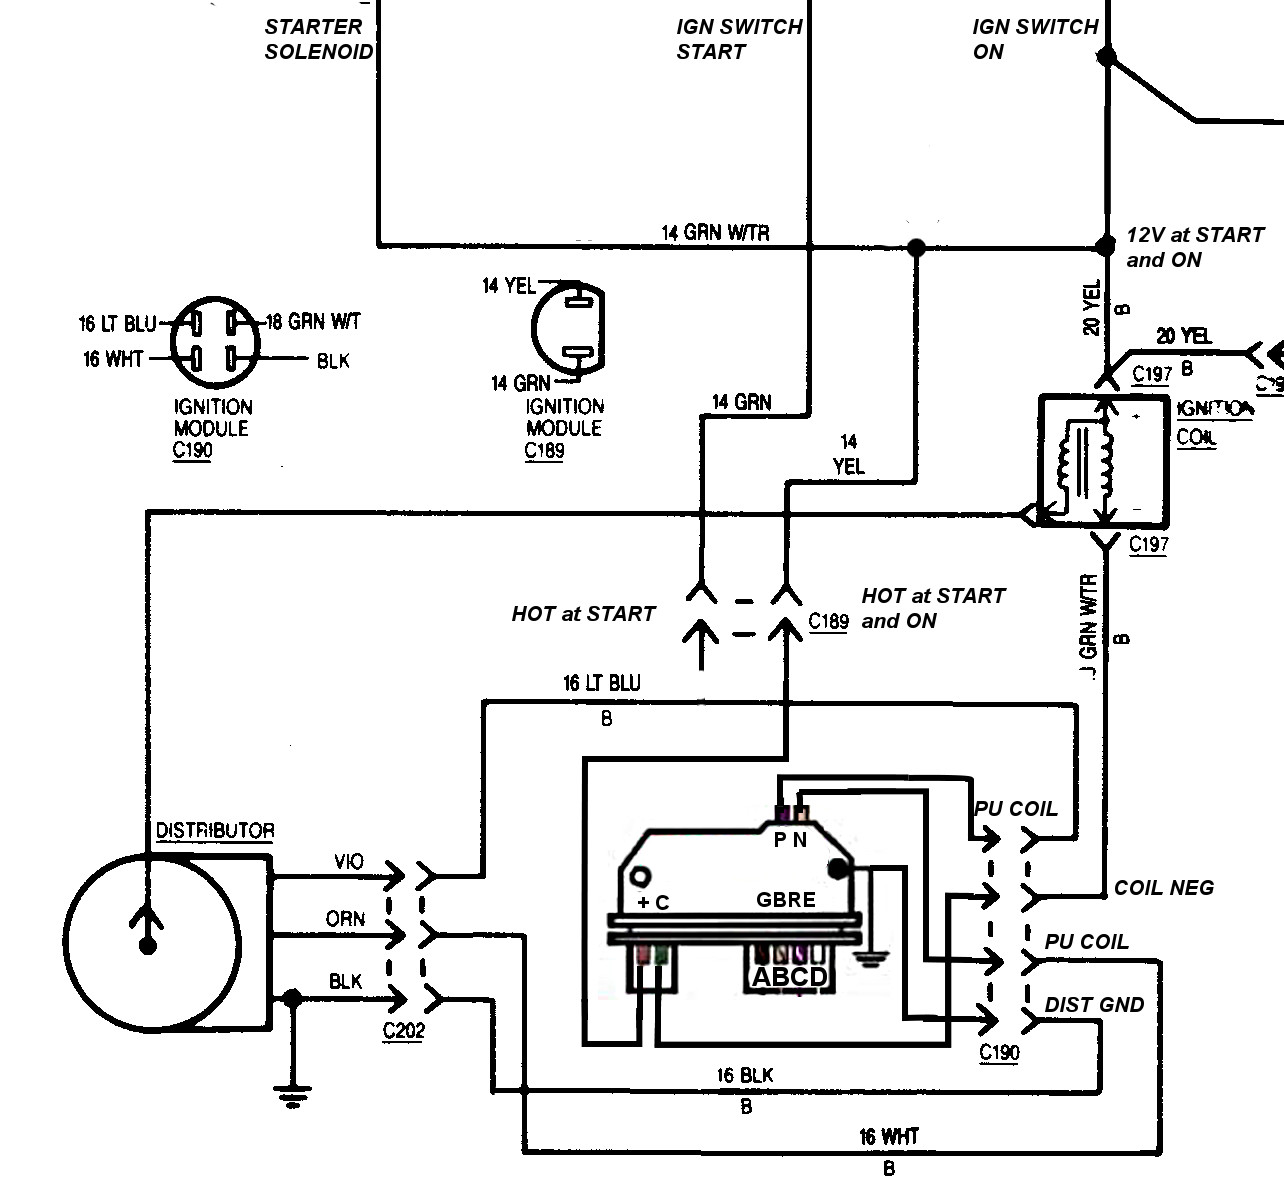 P 0900c15280083b37 also Ford Flex Wiring Diagram as well Unilite Distributor Wiring Diagram Ford moreover Vacuumhoses moreover 73 Chevy C10 Distributor To Ignition Switch Wiring Diagram. on dist wiring diagram chevy